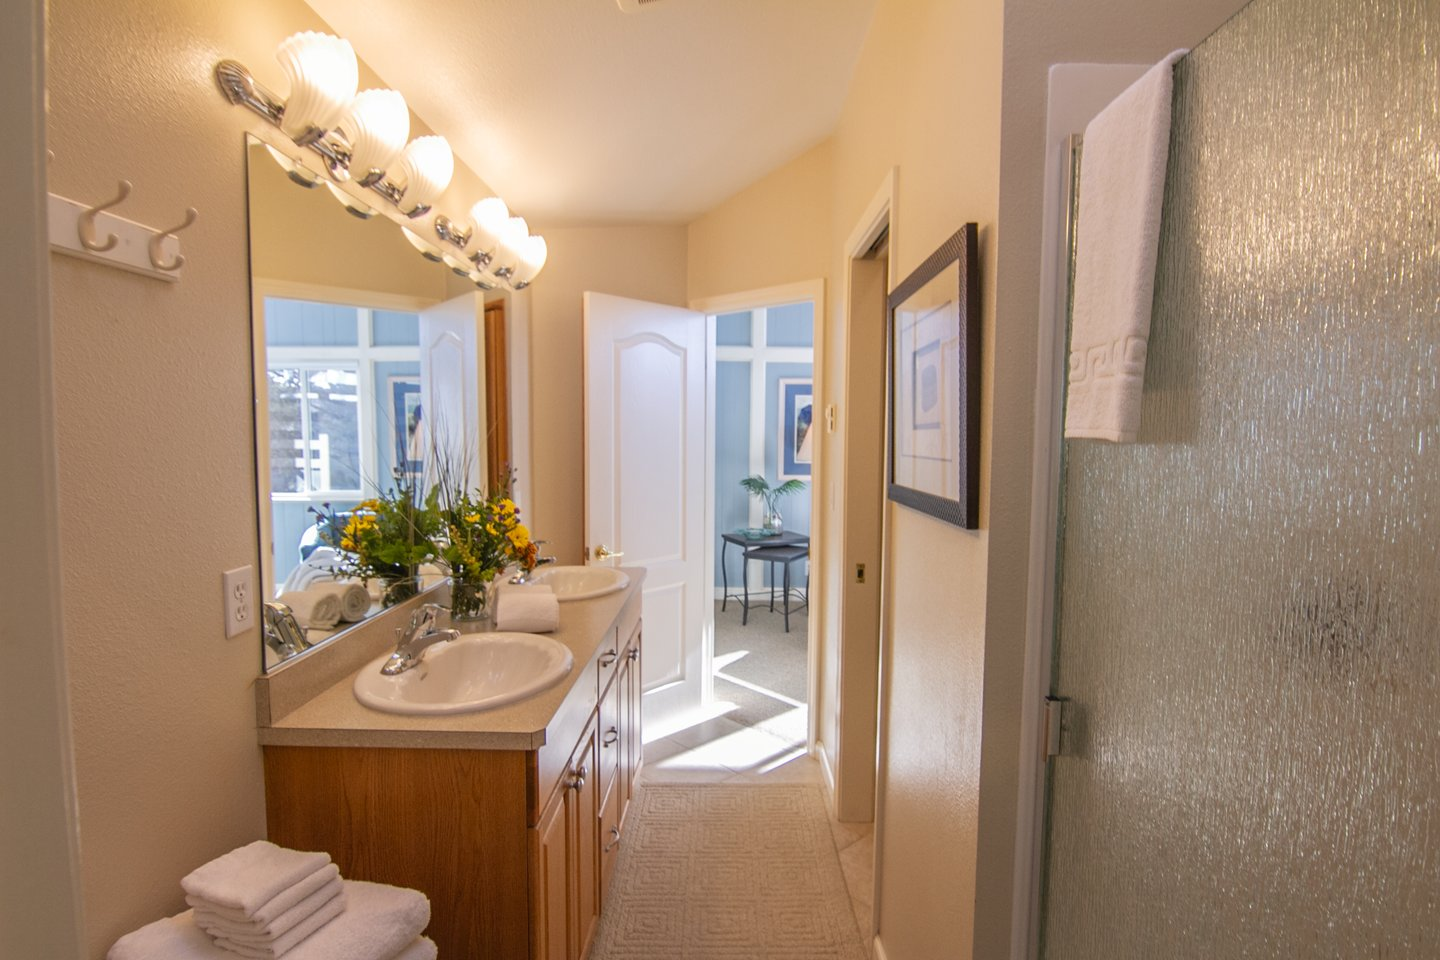 The jack and jill bathroom upstairs with a double vanity gives everyone plenty of privacy.